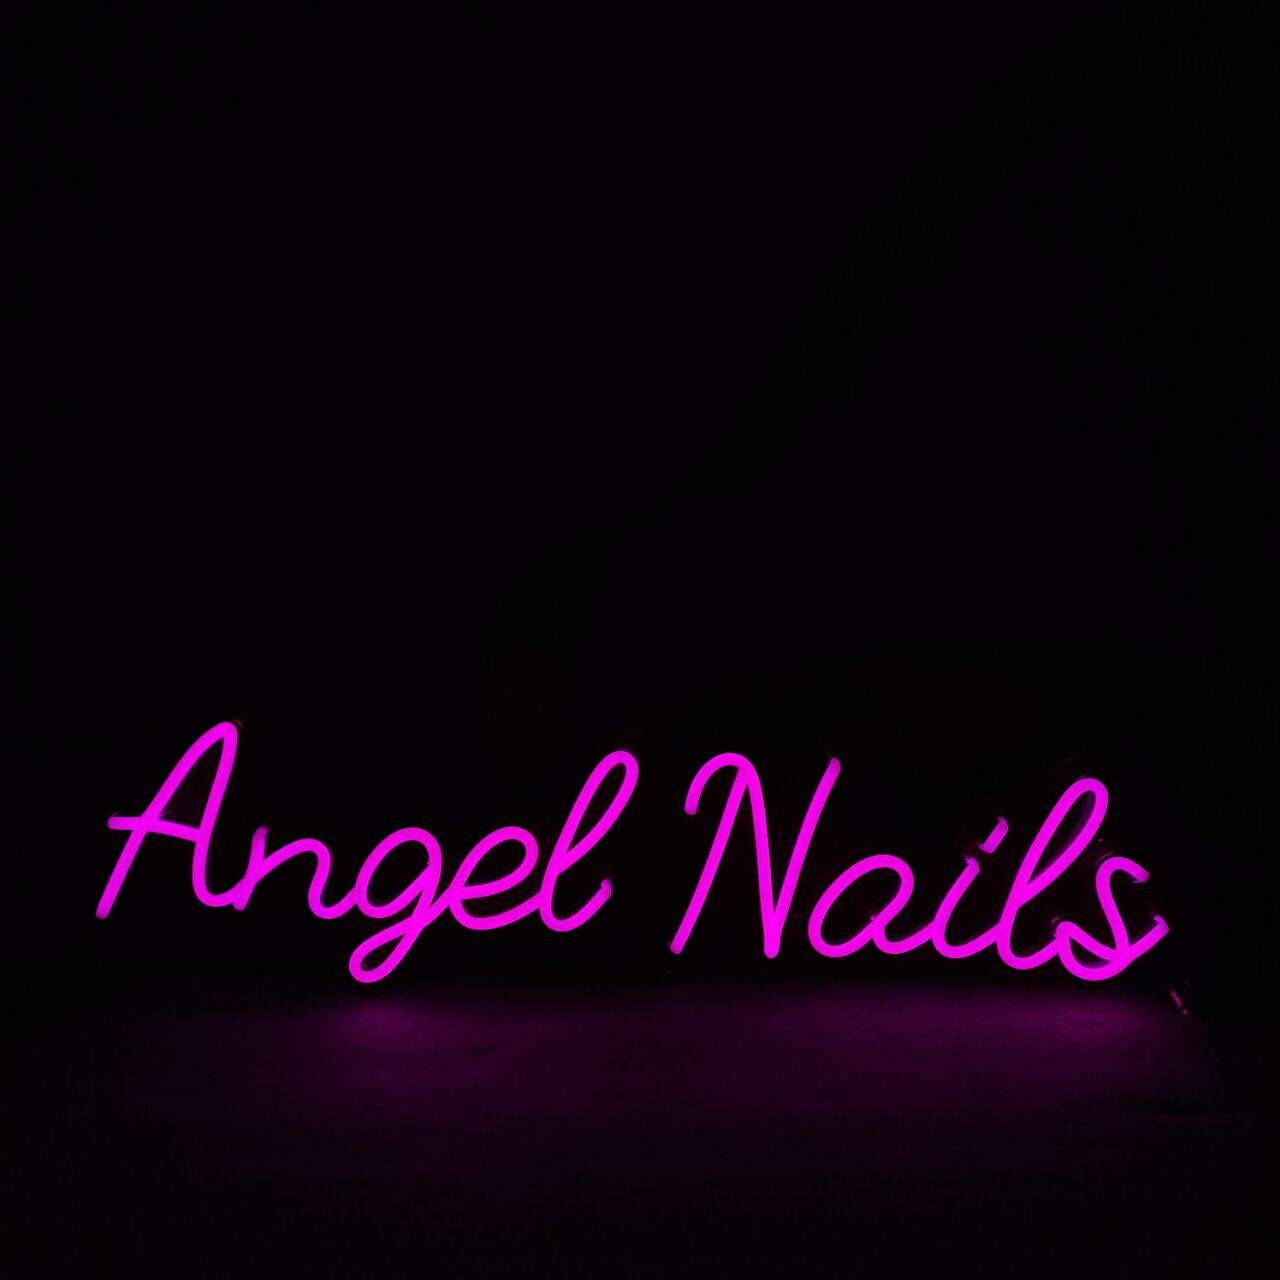 Personalized Neon Signs Wall Hanging Decor for Business Logo Slogan Barber Salon Led Neon Sign Nail Shop Neon Sign Board enlarge